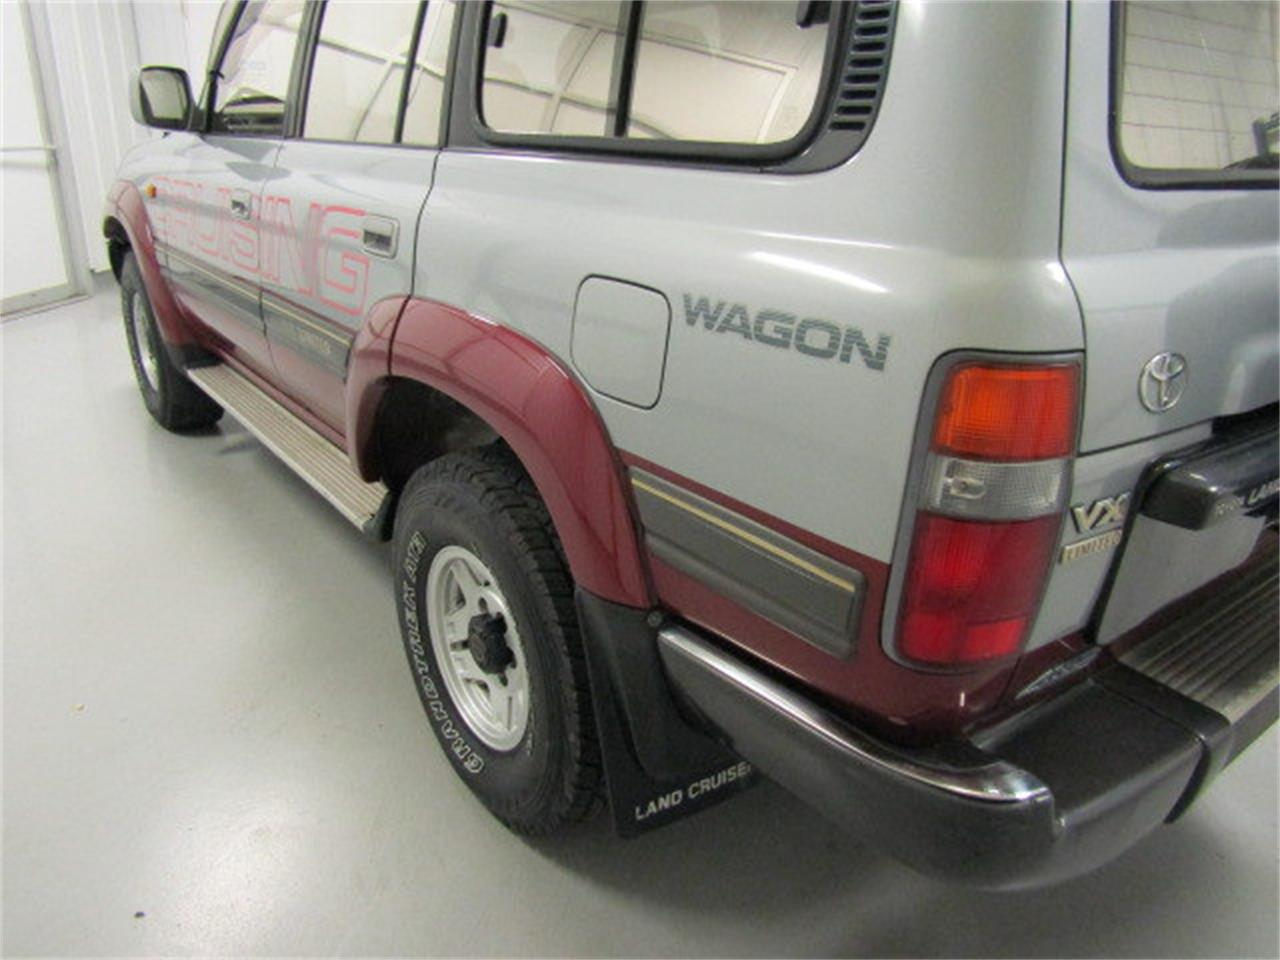 Large Picture of 1990 Land Cruiser FJ - $11,993.00 Offered by Duncan Imports & Classic Cars - LI35